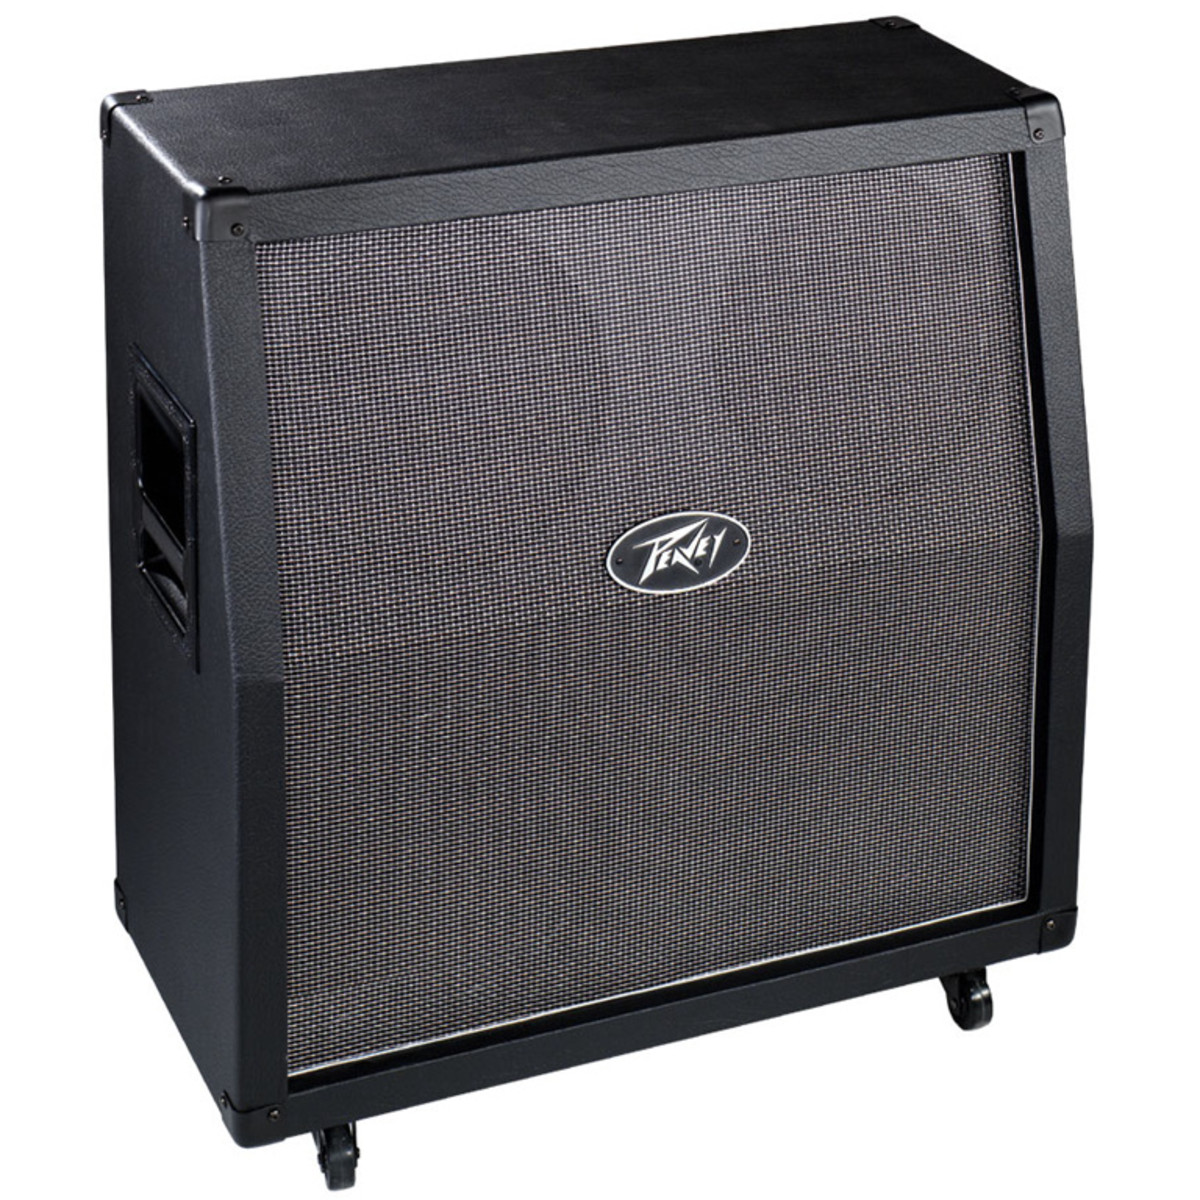 products outlet red riff r city guitar amplifiers compact victory cabinet